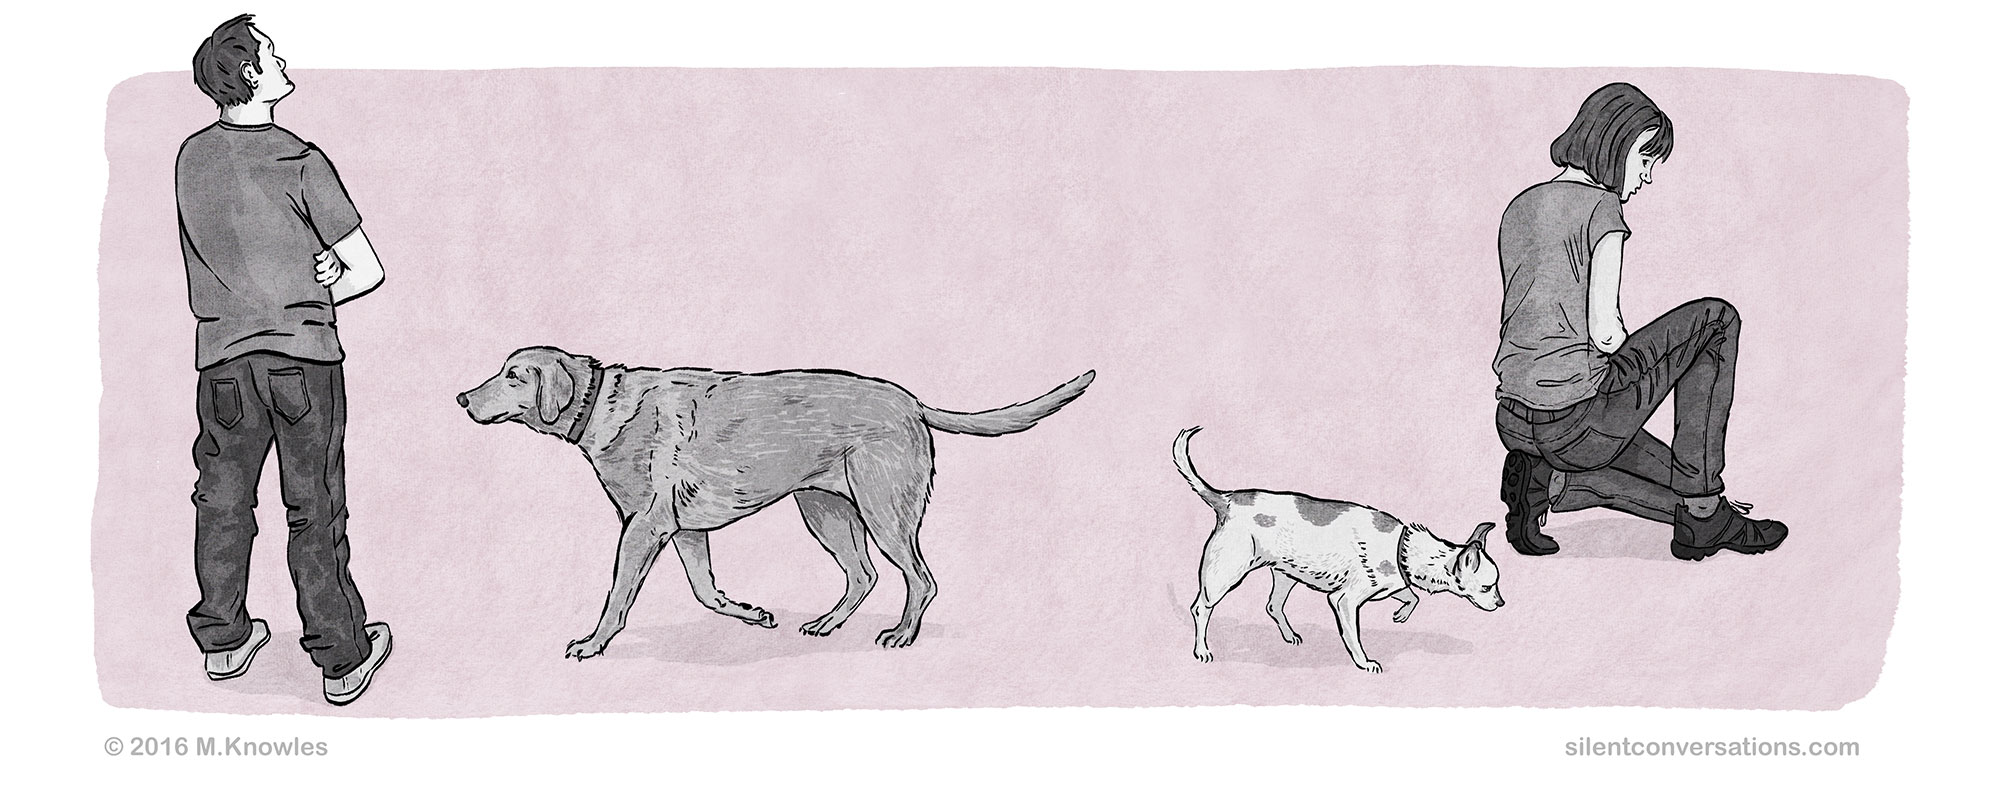 How to greet a dog politely, dog greeting